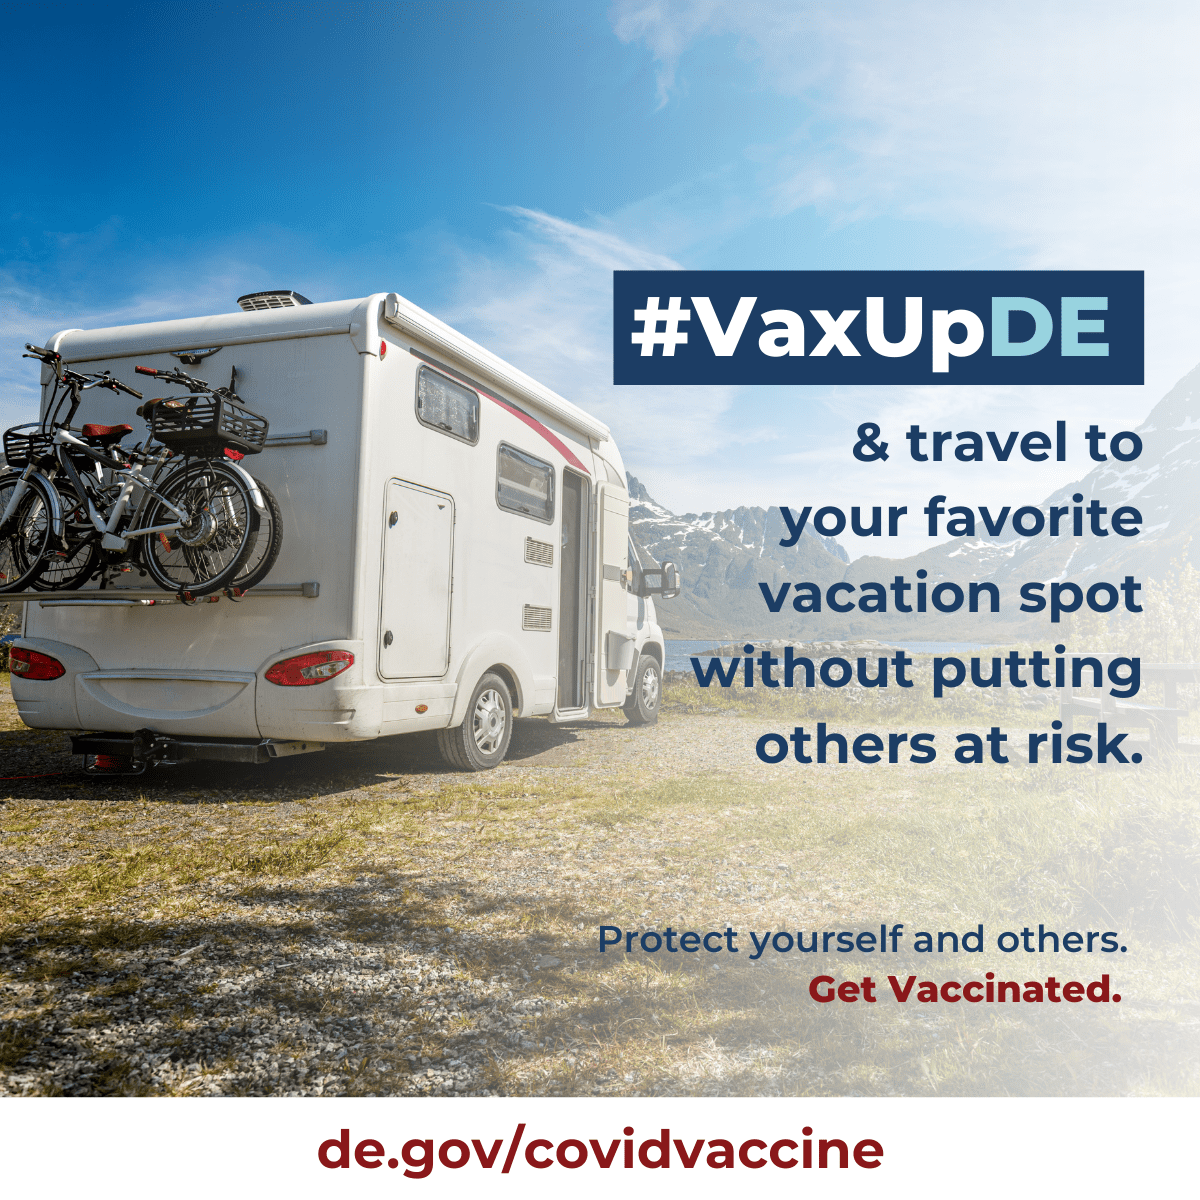 VaxUpDE Protect yourself and others. Get vaccinated.